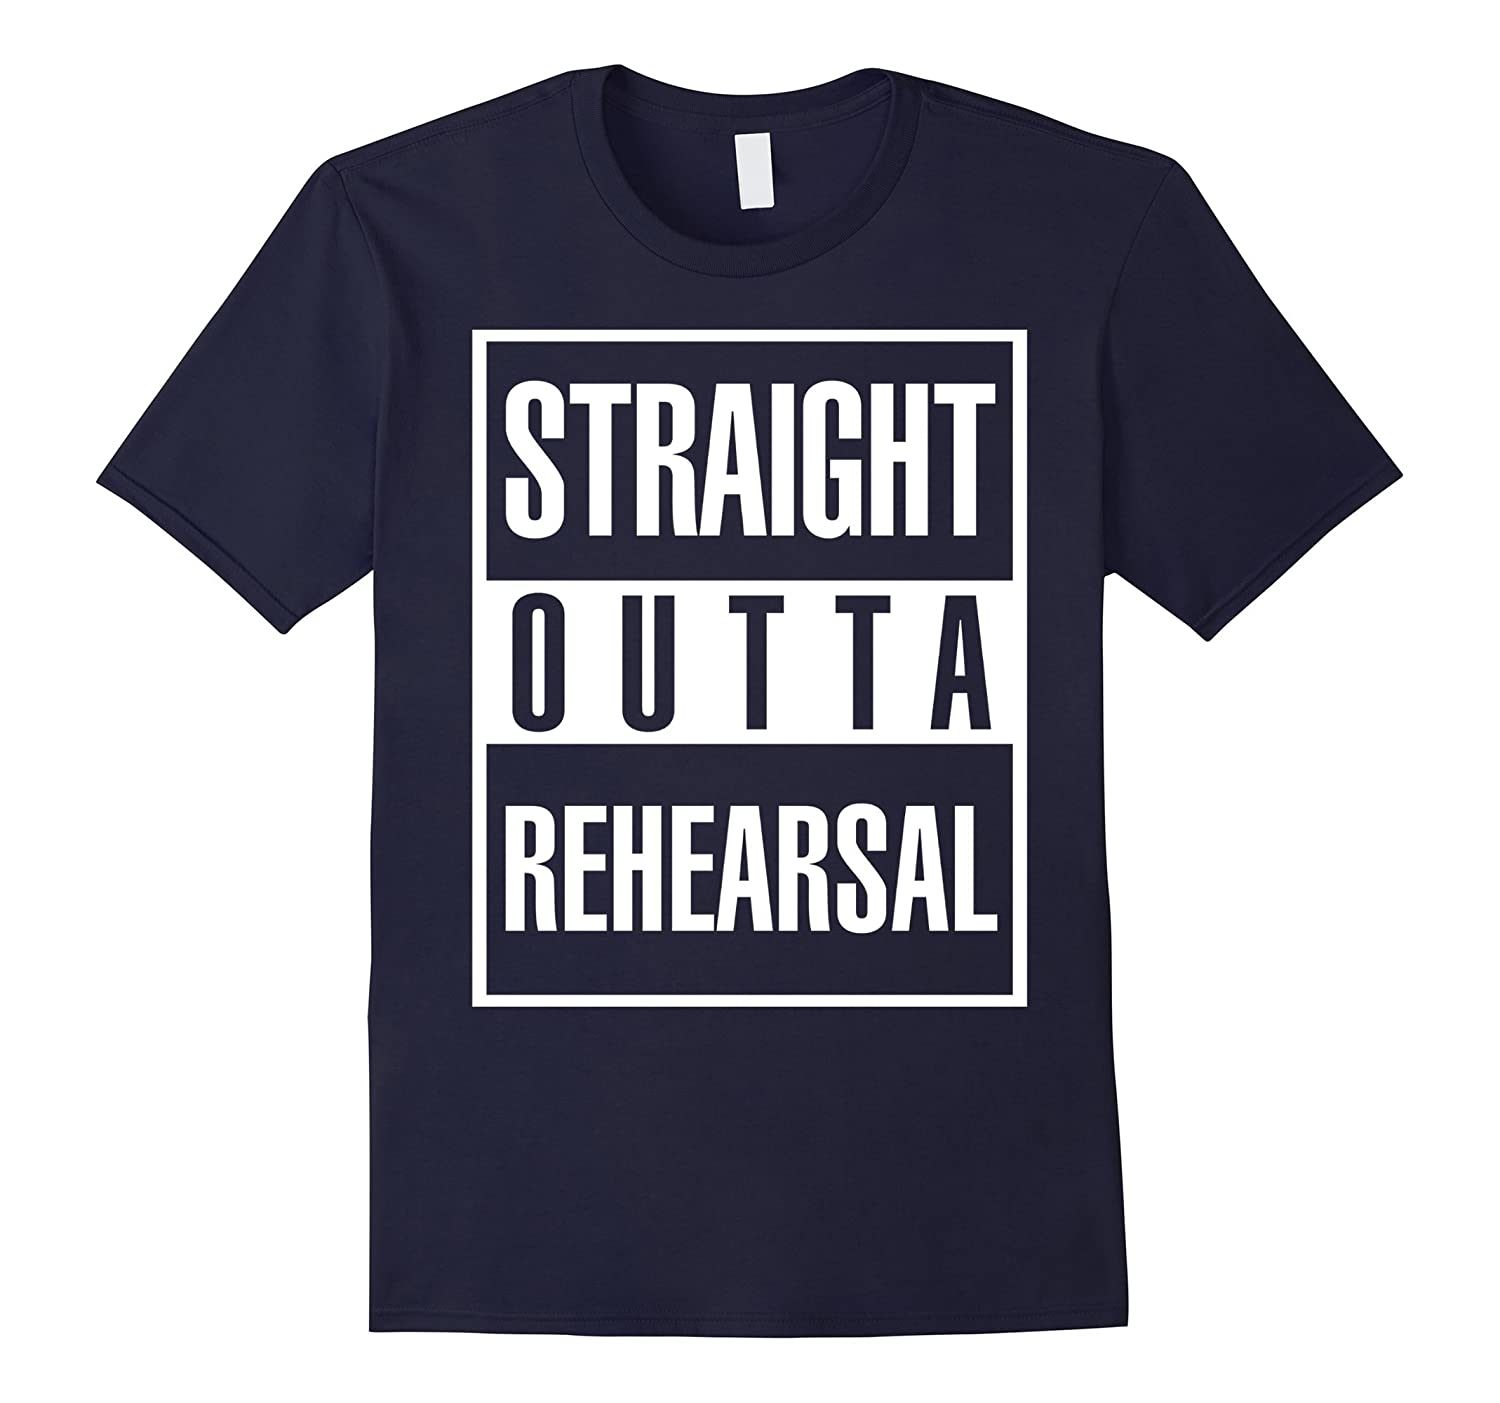 Straight Outta Rehearsal Drama Theatre Shirt For Actors-FL